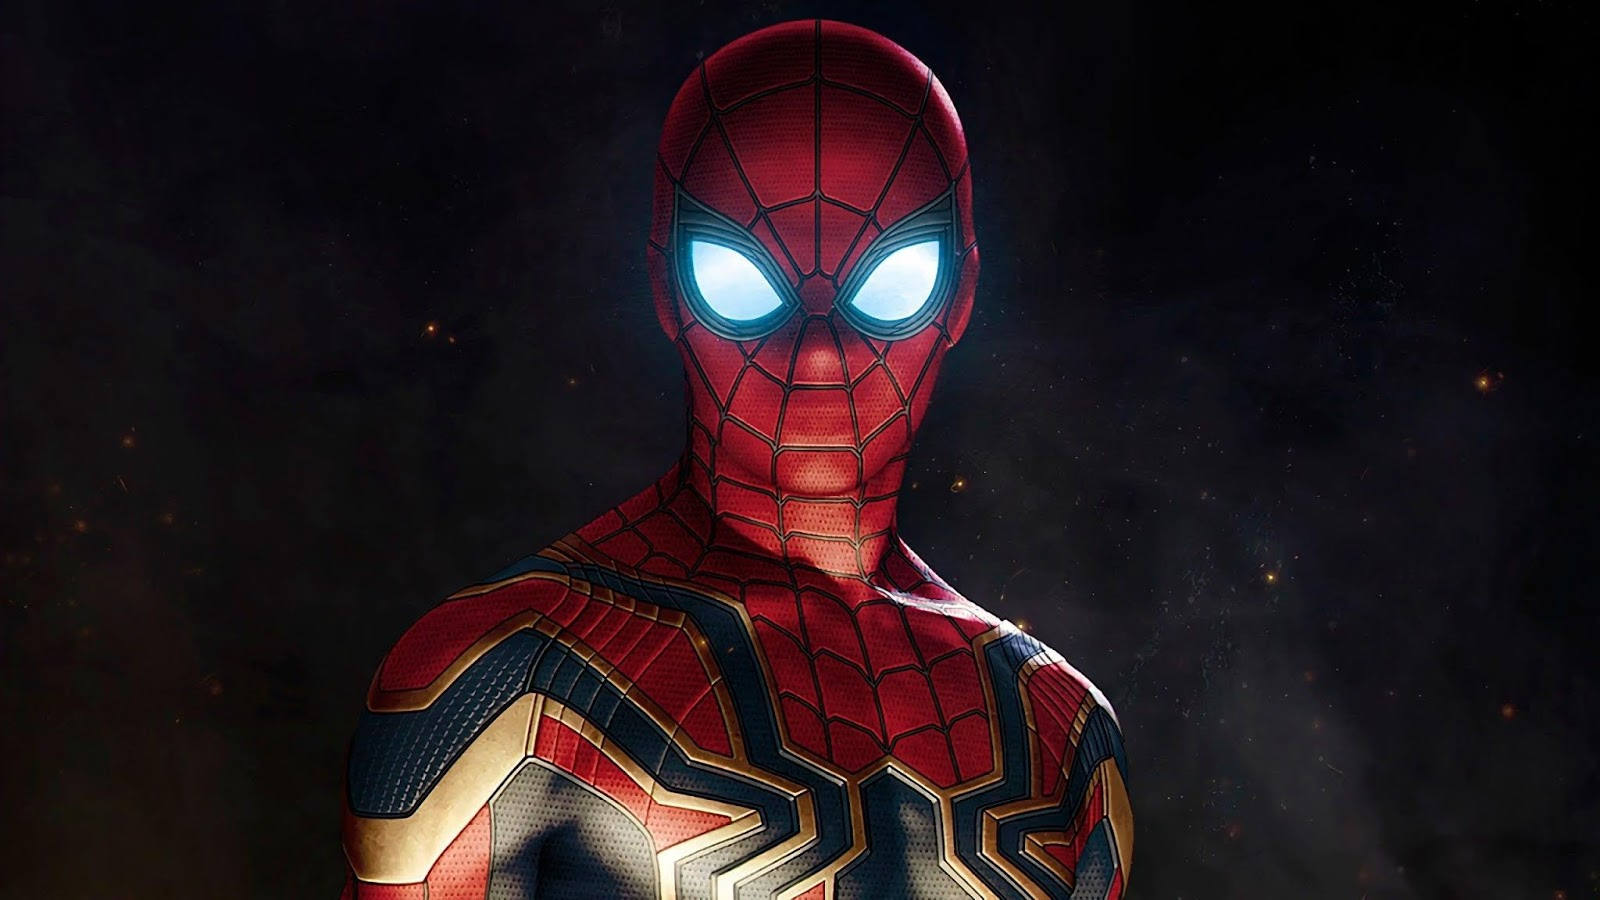 Avengers Endgame Spider Man Hd Wallpaper